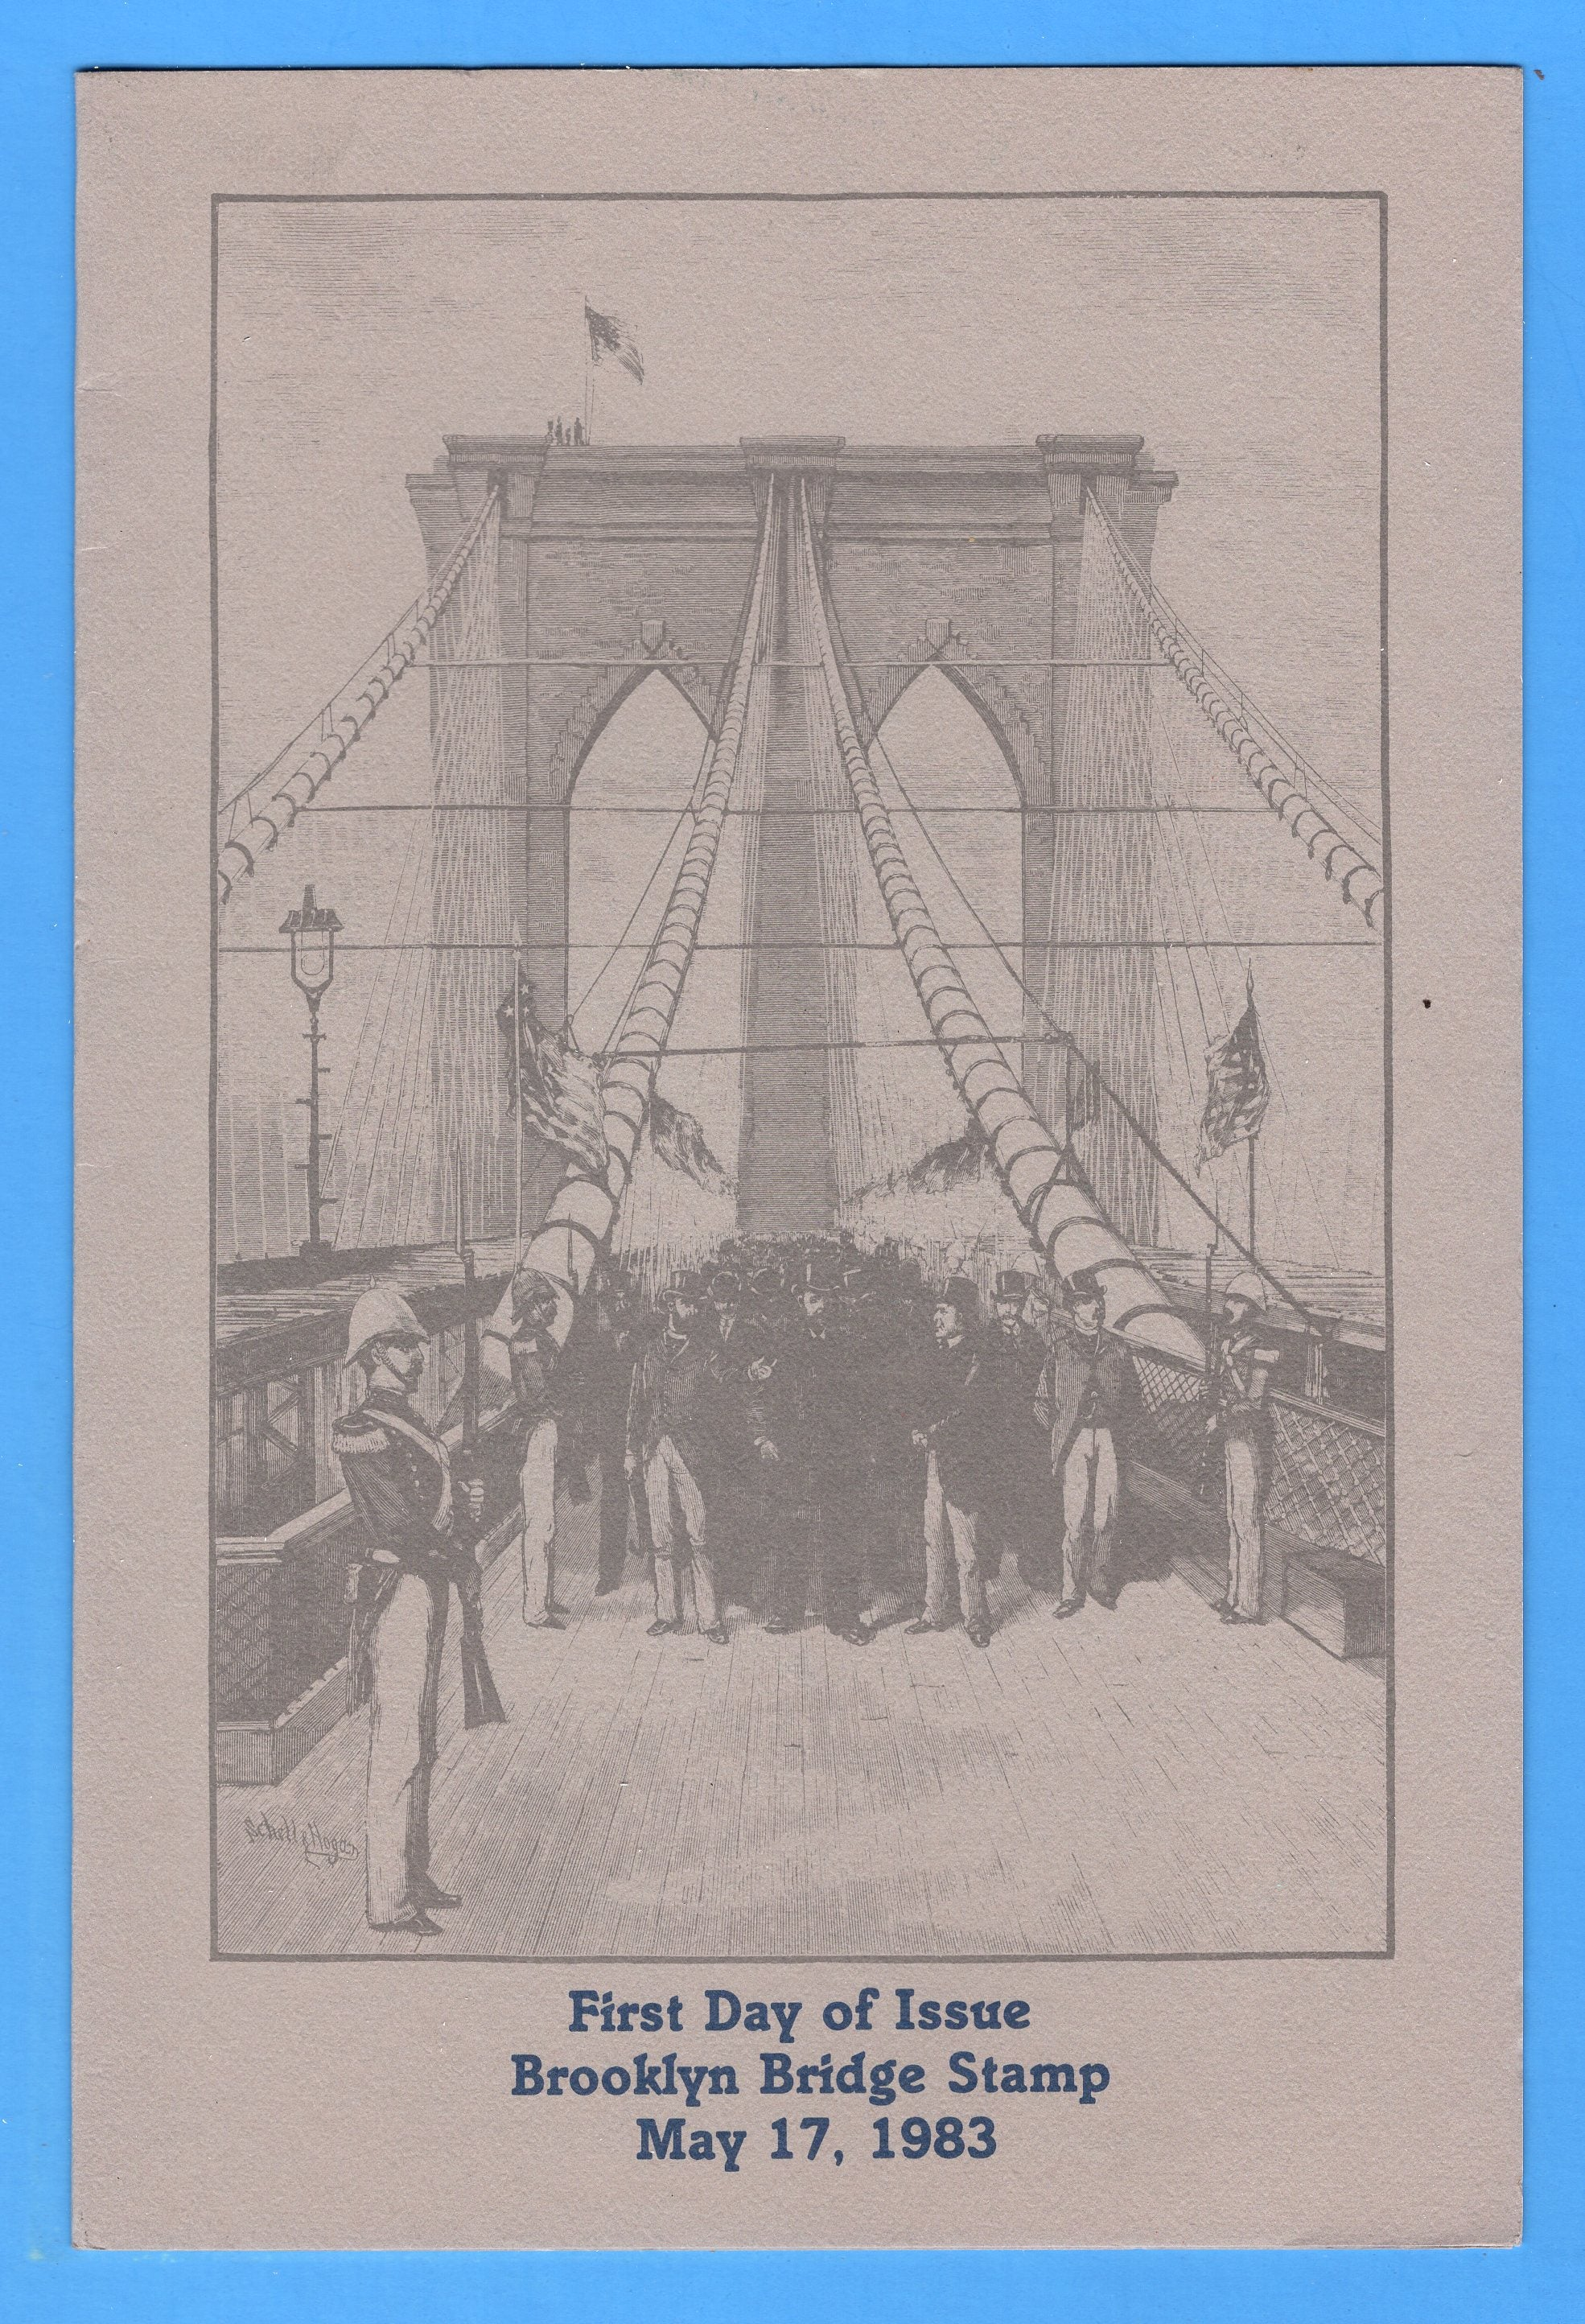 Brooklyn Bridge First Day Program